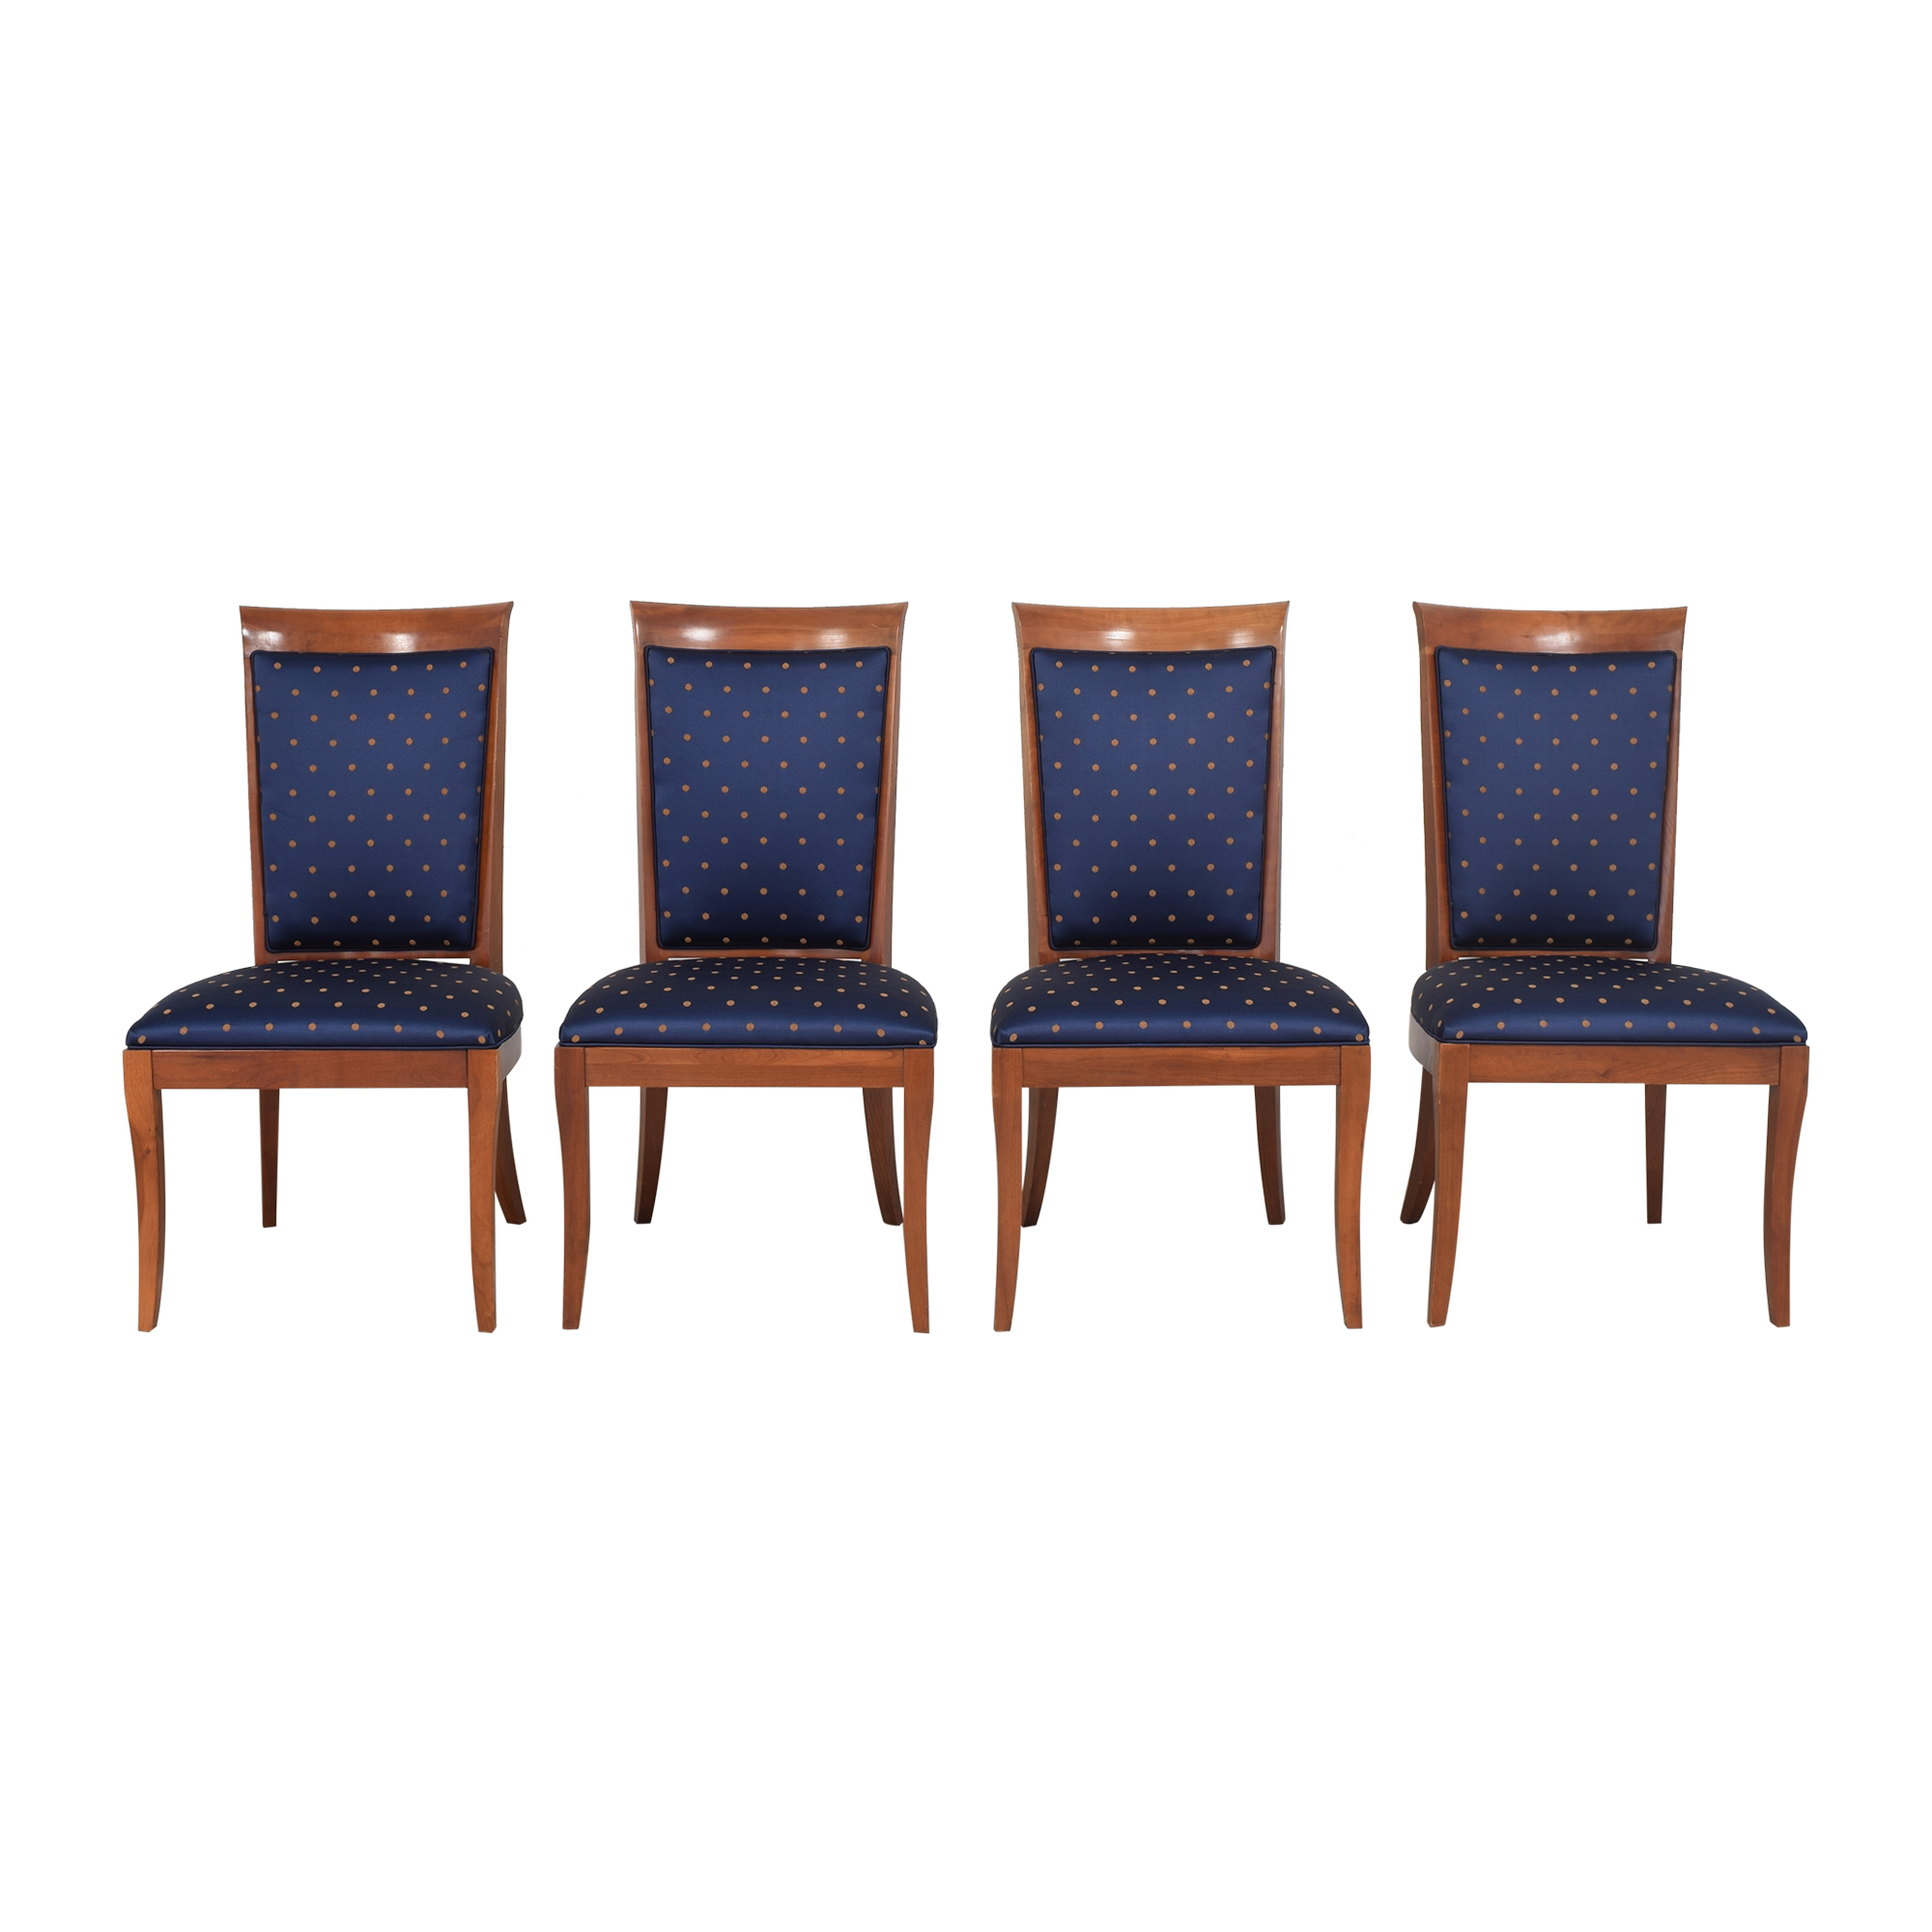 Ethan Allen Ethan Allen Medallion Collection Dining Side Chairs nj